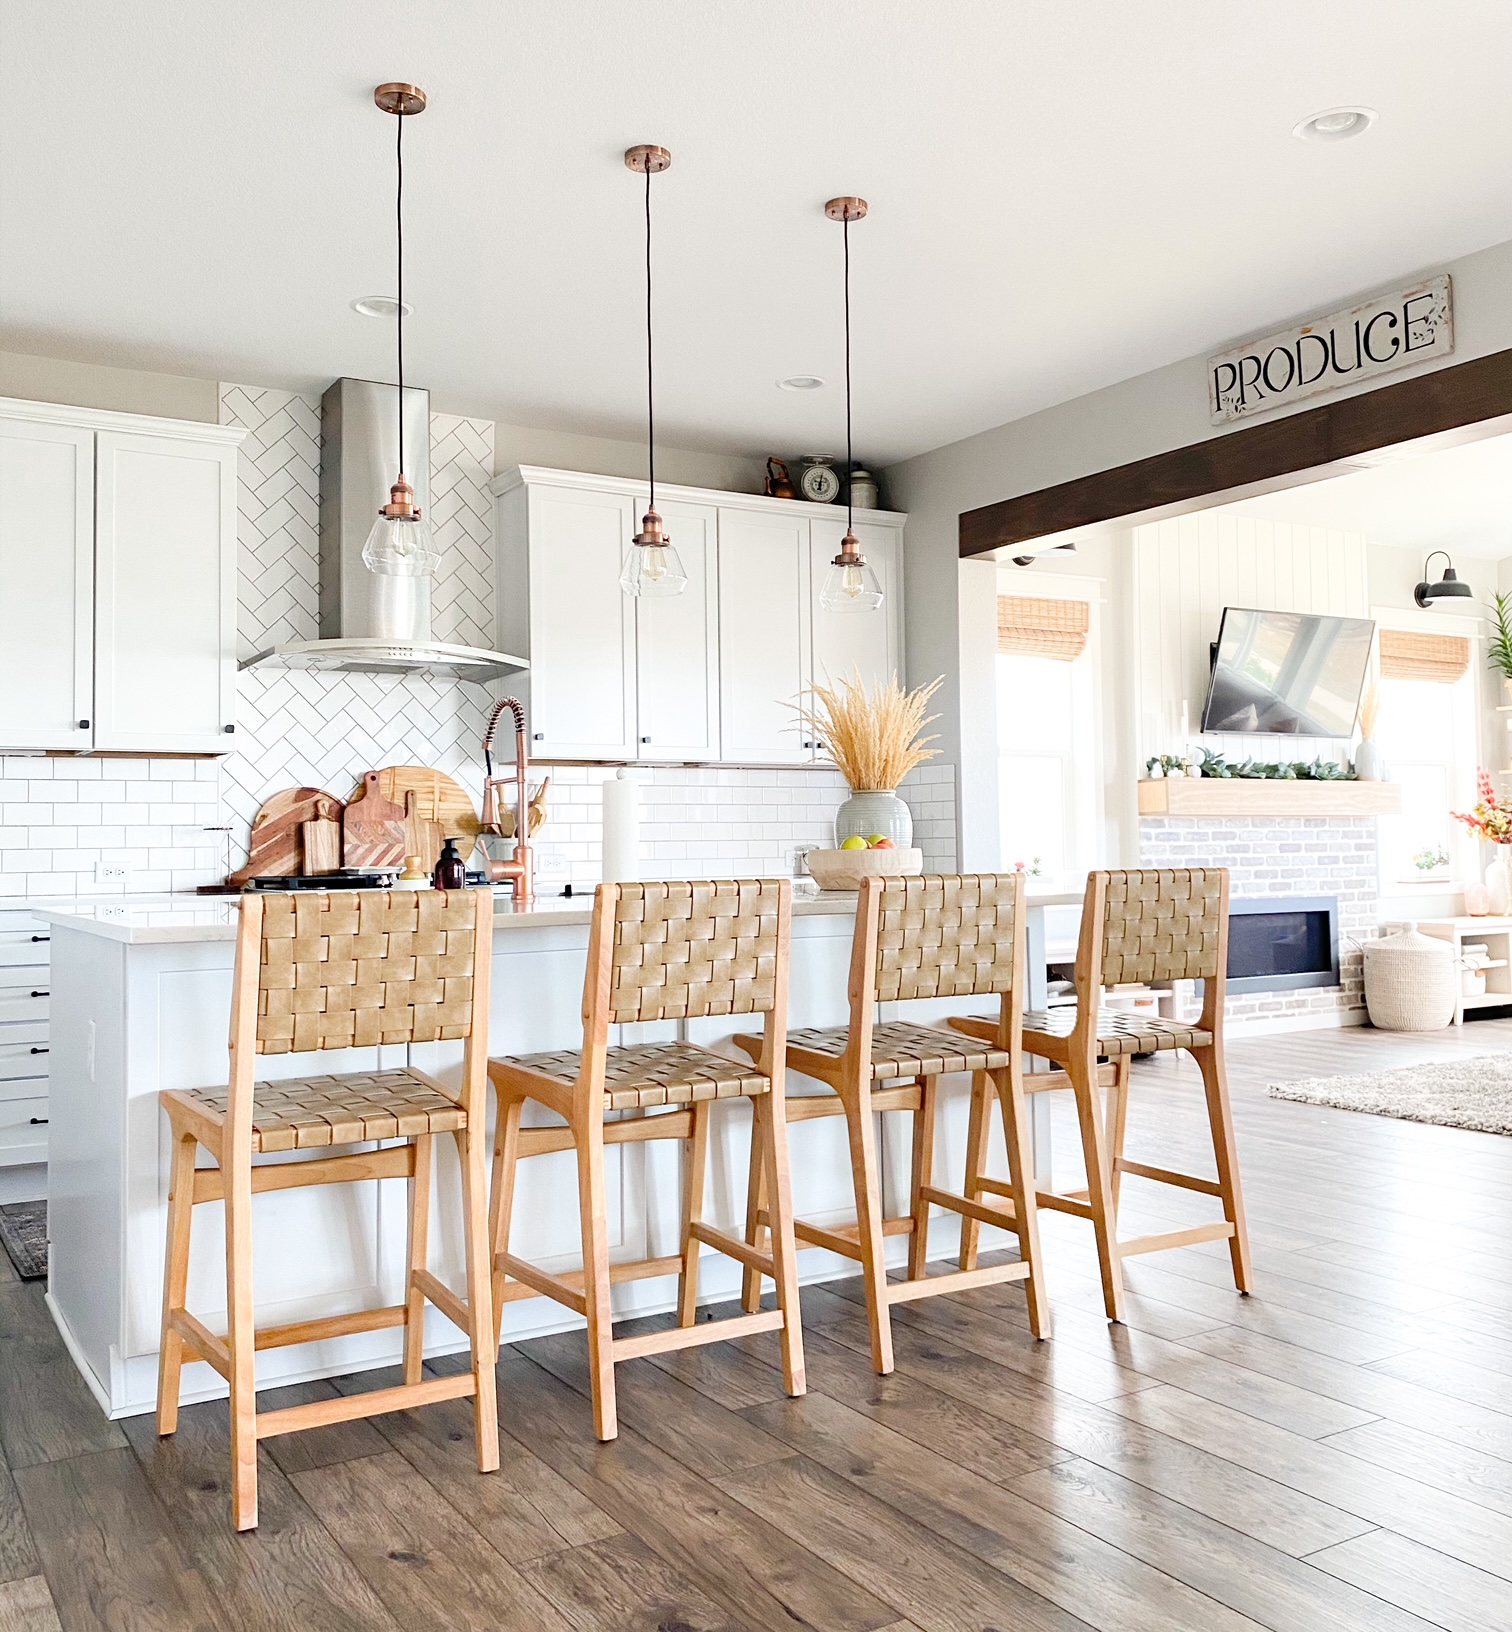 boho bar stools in a white kitchen with  brick and shiplap fireplace in the background